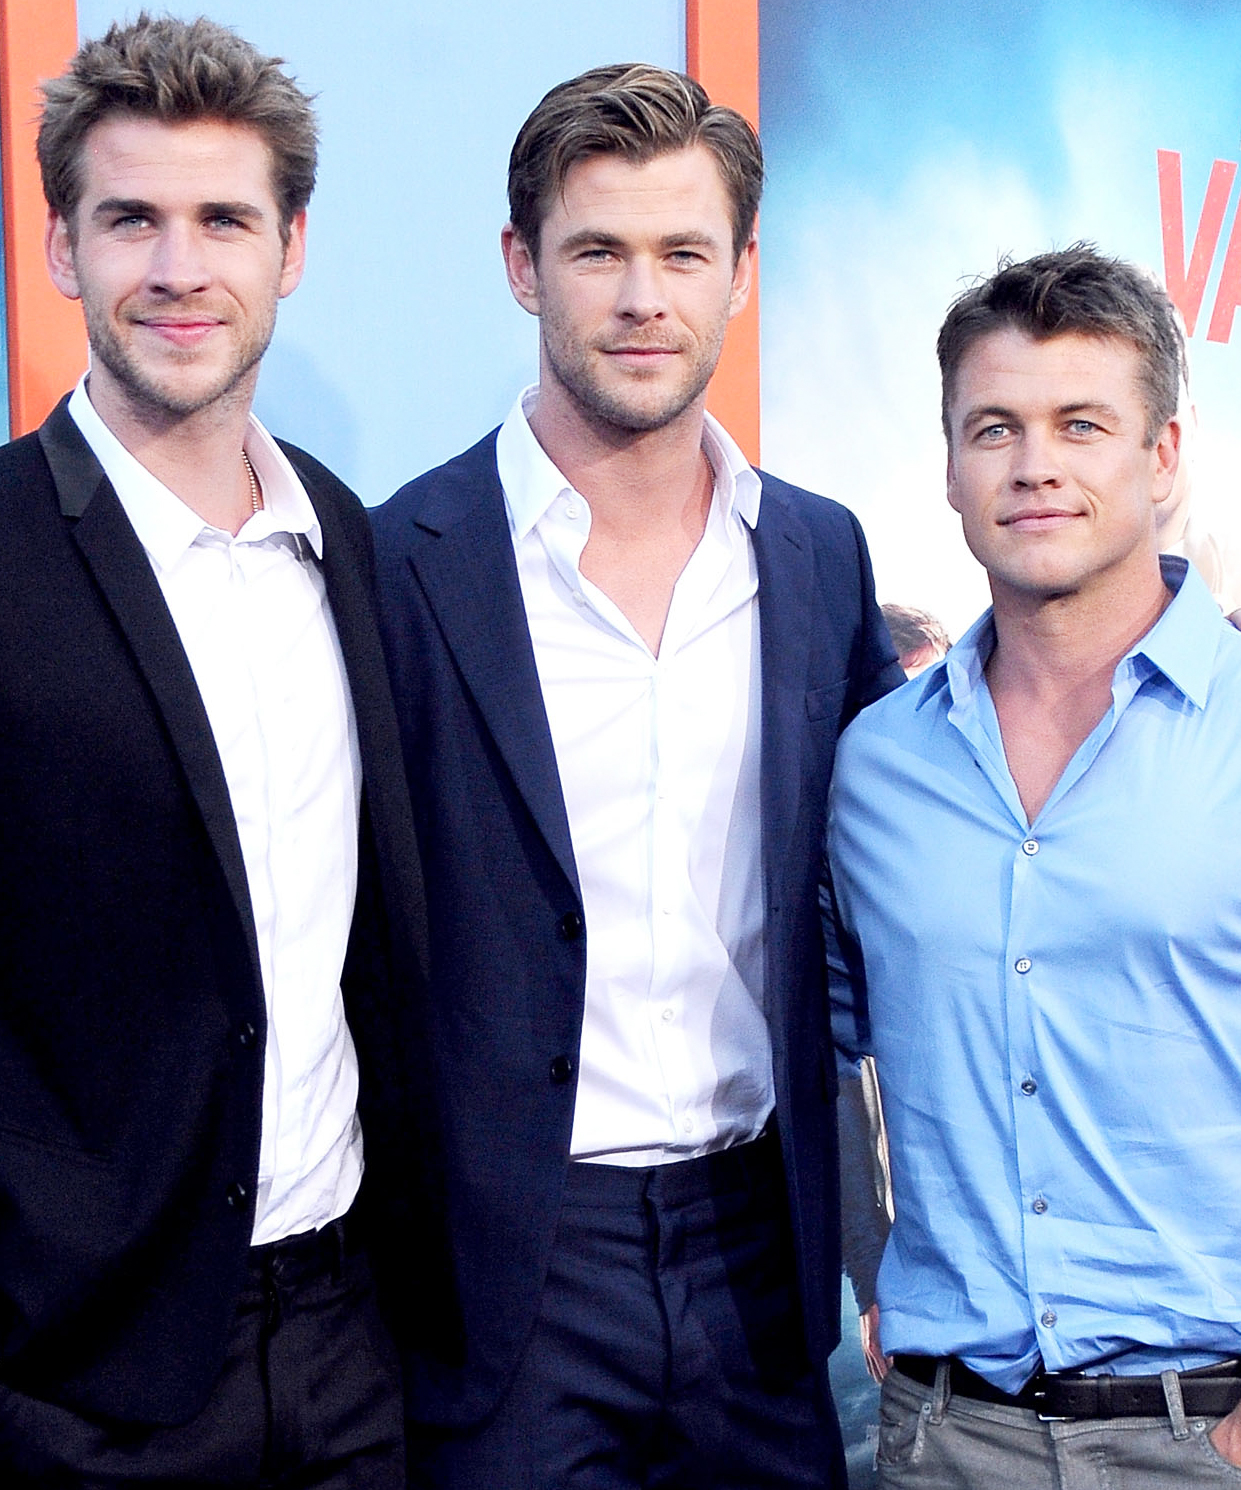 (L-R) Actors/brothers Liam Hemsworth, Chris Hemsworth and Luke Hemsworth arrive at the Premiere Of Warner Bros. 'Vacation' at Regency Village Theatre on July 27, 2015 in Westwood, California.